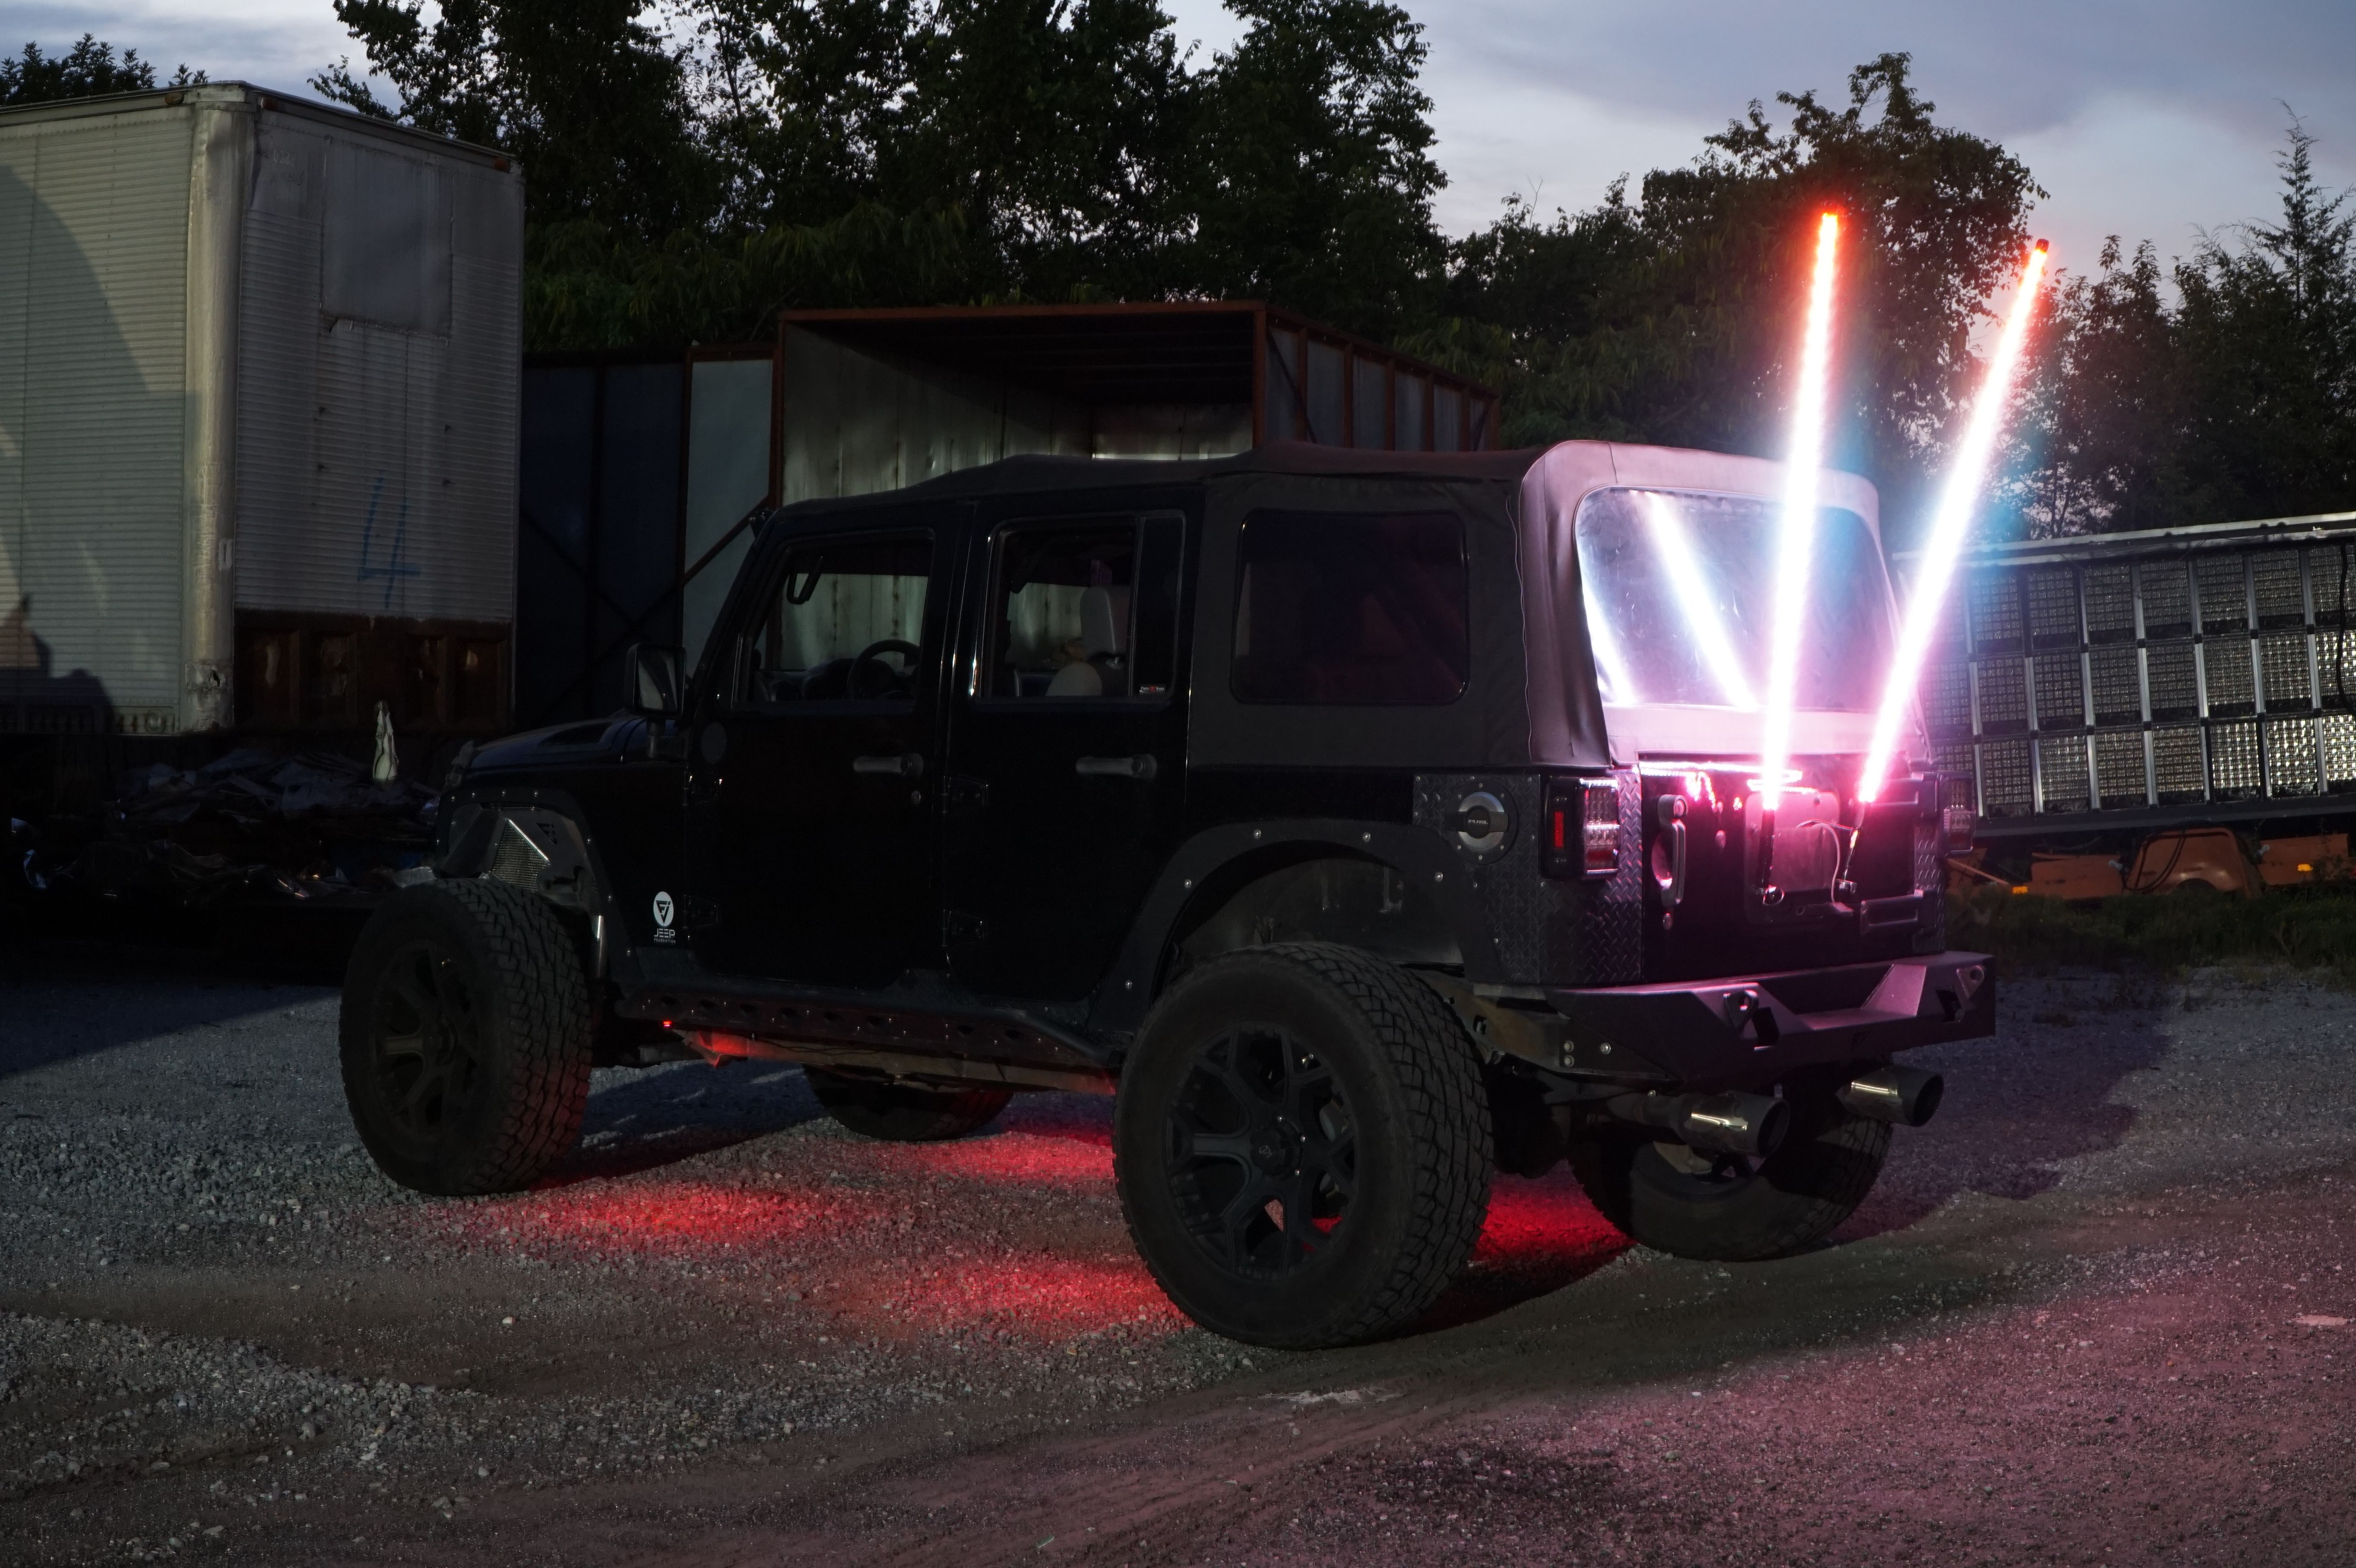 Led Whip Lights For Jeeps And Atv S In 2020 Jeep Jeep Photos Monster Trucks